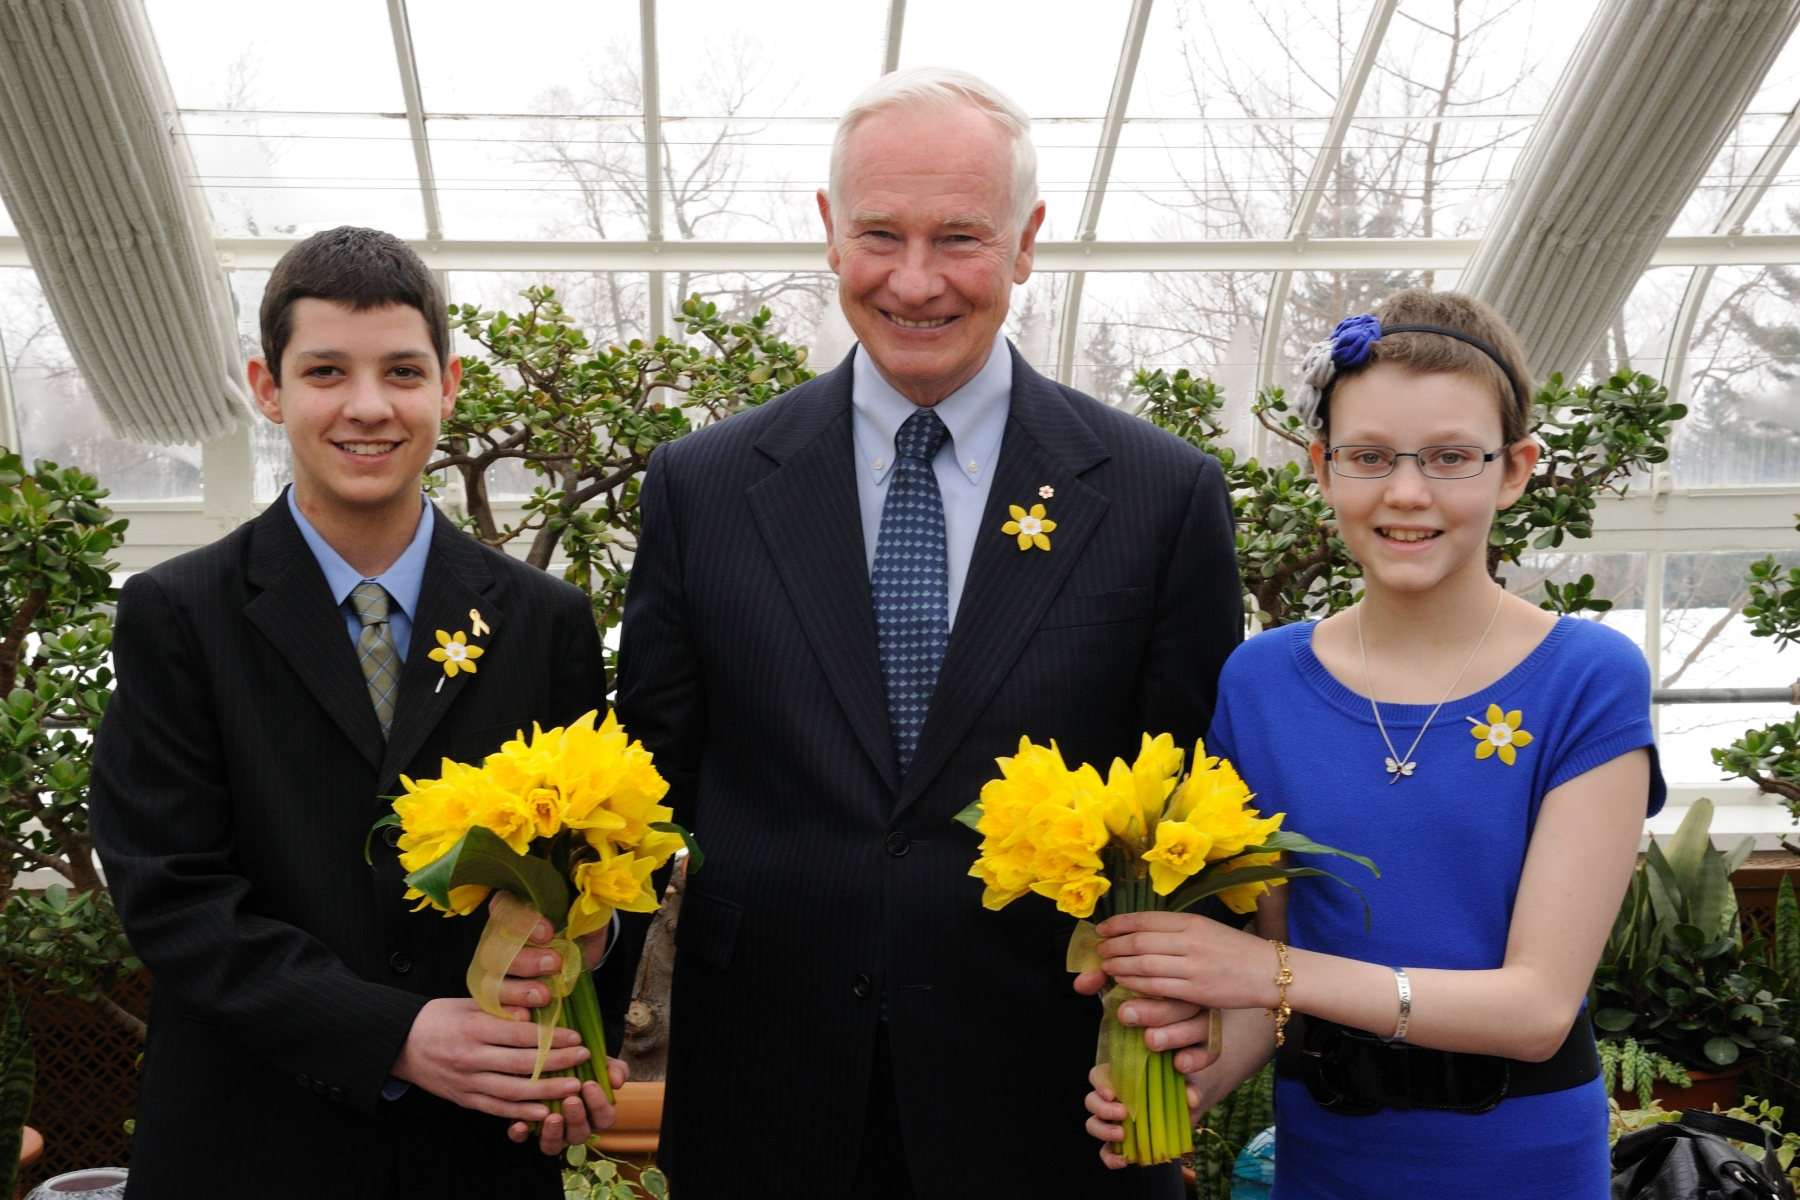 The Governor General posing with Brodie Rafert and Sarah Telford after receiving a bouquet of daffodils to mark the beginning of the Canadian Cancer Society's Daffodil Days campaign for 2011. Funds raised during the campaign will support the most promising cancer research being done in Canada, and will also provide services to people living with cancer and raise awareness about cancer prevention.